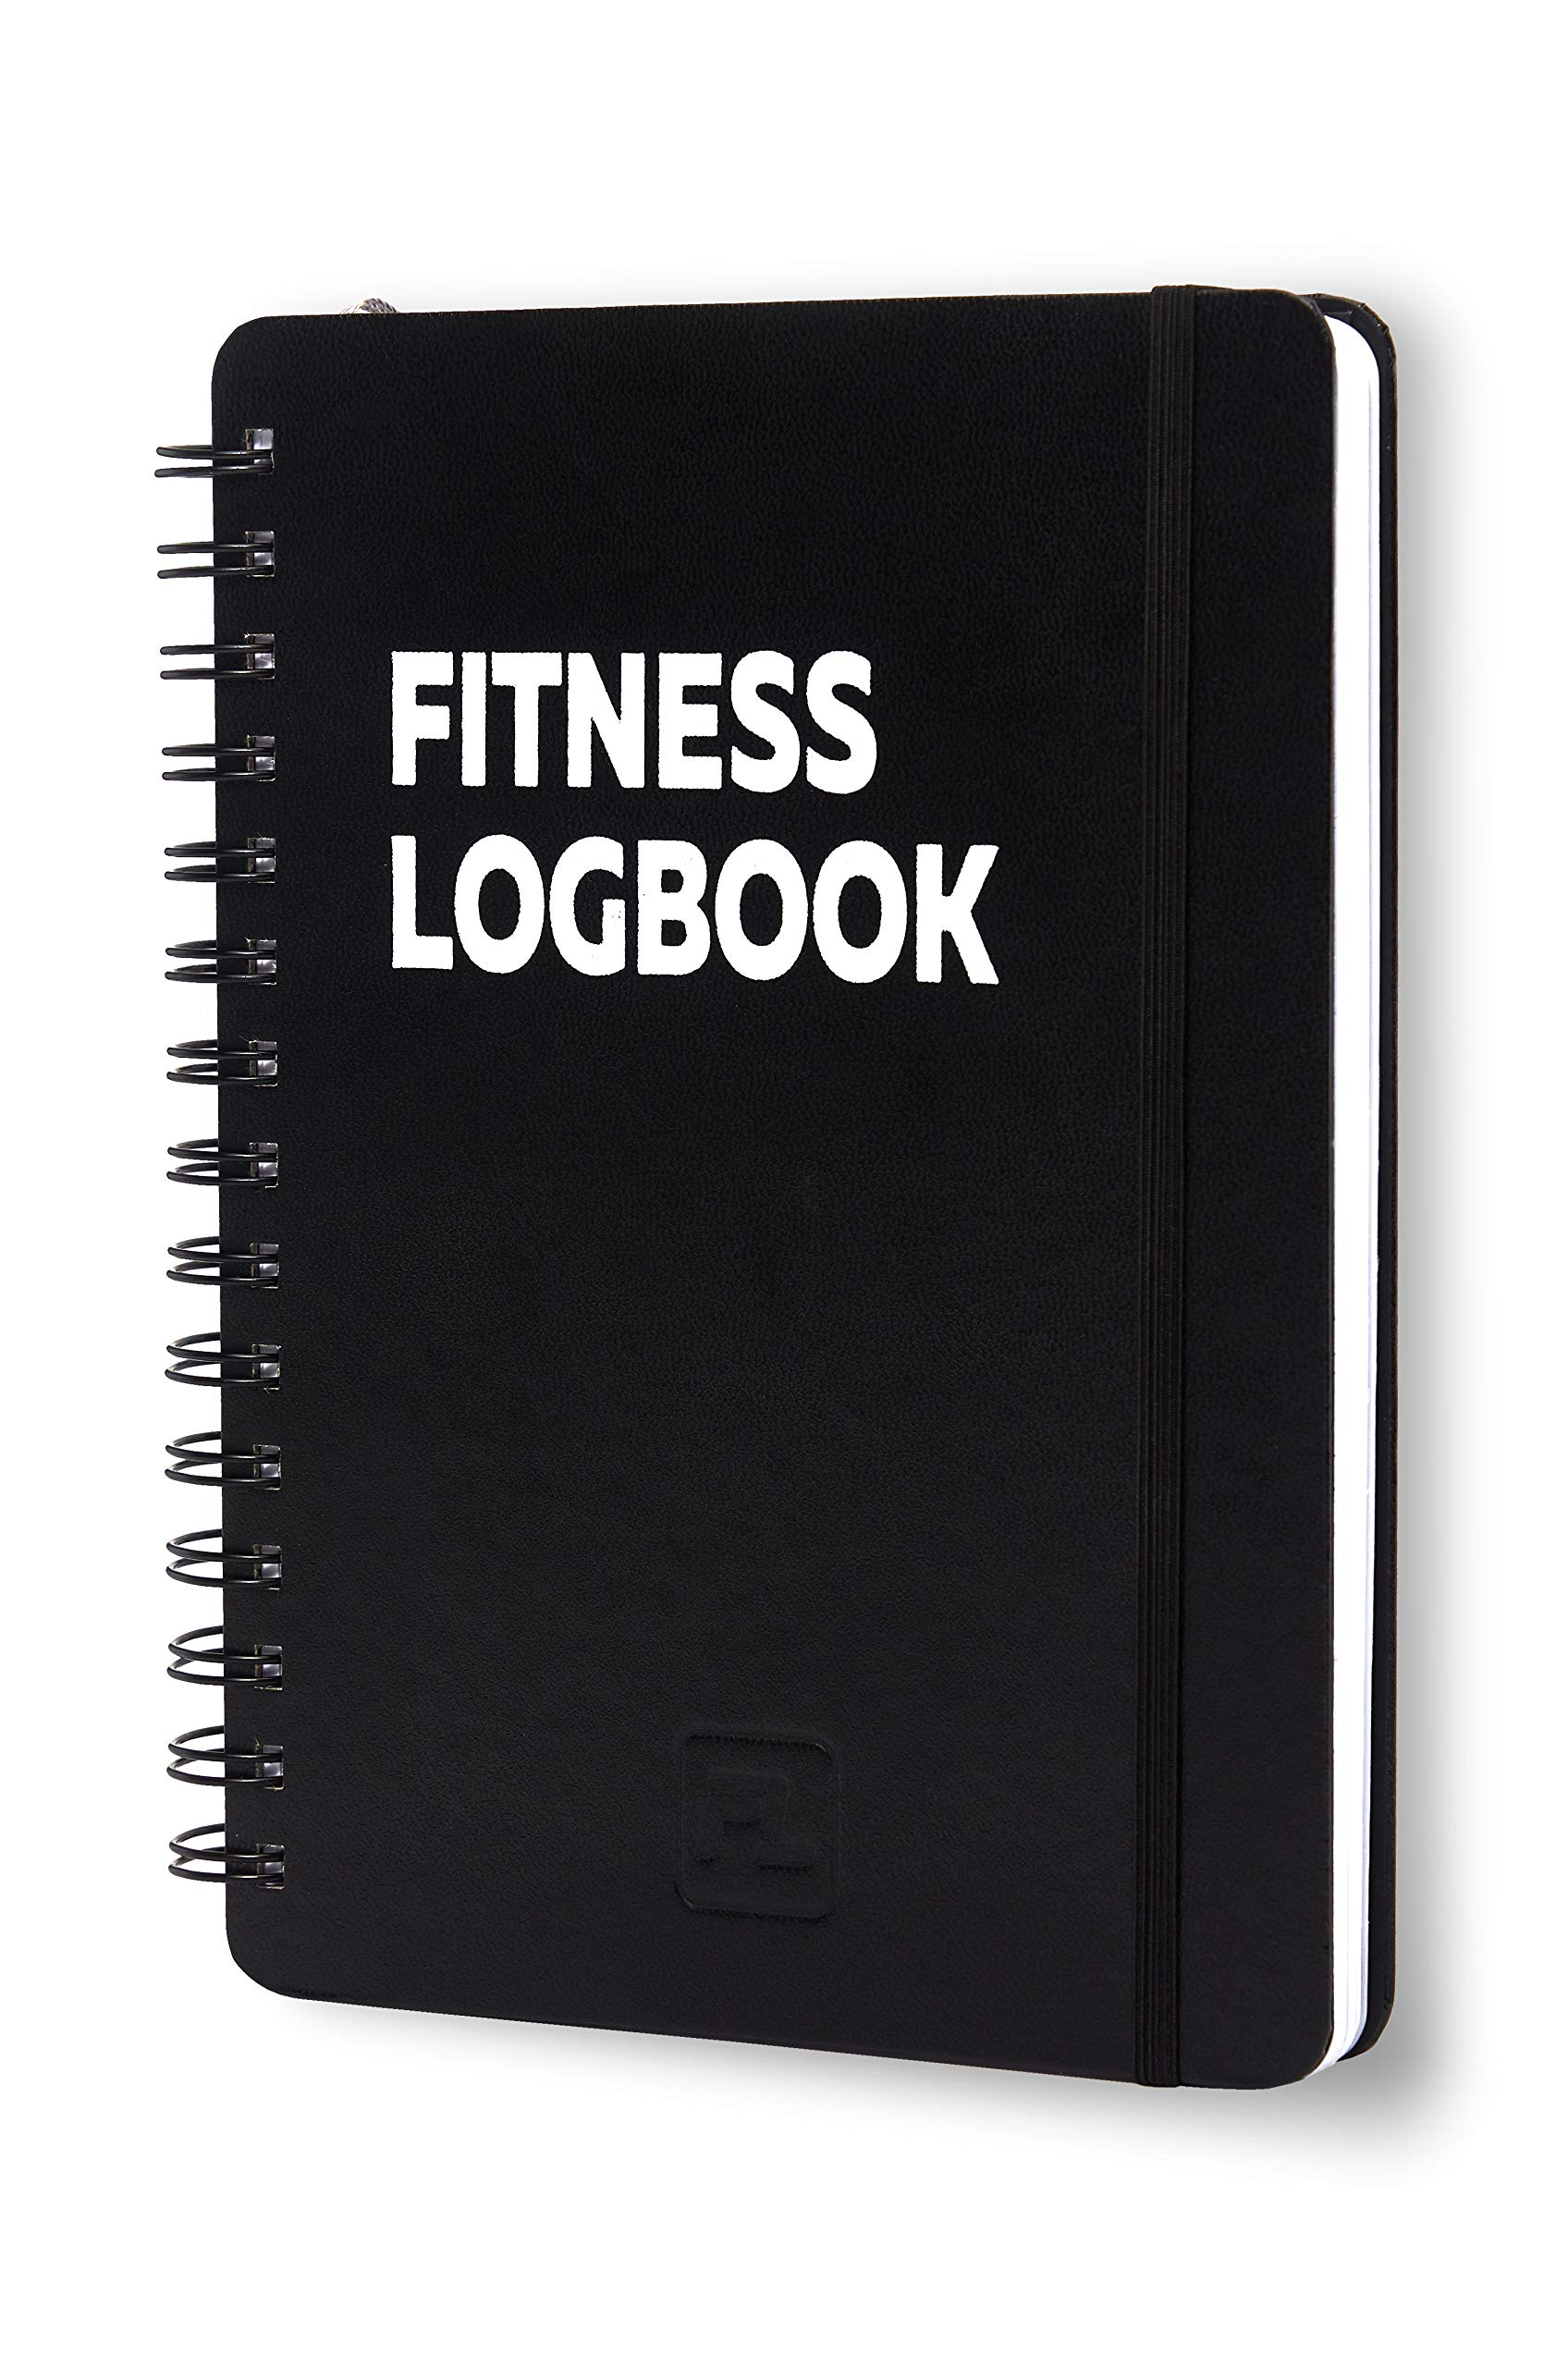 Fitness Logbook: Undated Workout Journal - 6 x 8 inches - 150 Workouts - Thick Paper, Hard Cover, Elastic Closure, Round Corners, Sturdy Binding - Stylish, Minimalistic and Easy-to-Use Gym Log Book